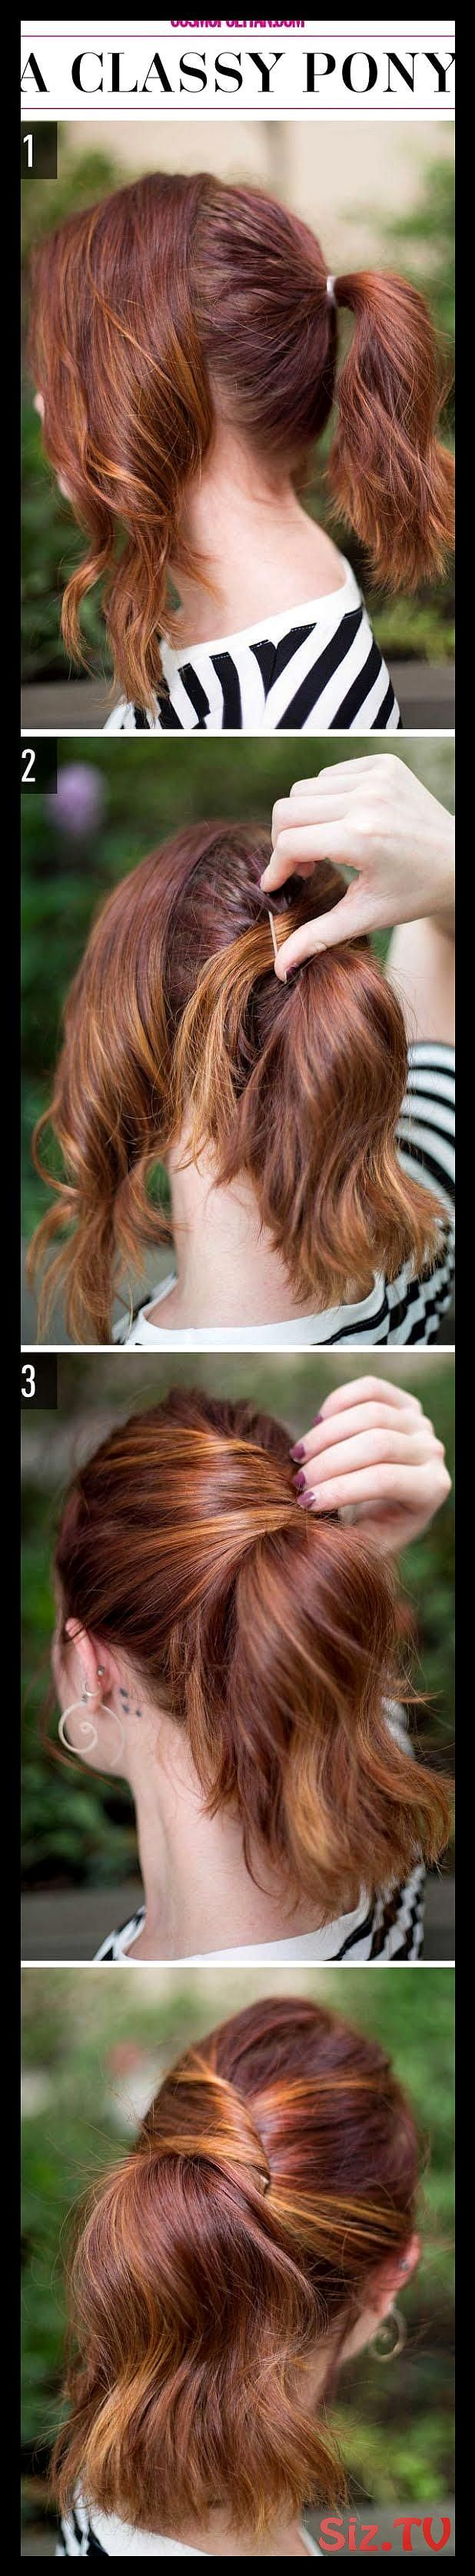 15 Super Easy Hairstyles For Lazy Girls Who Can T Even 15 Girls Hairstyles Lazy Supereasy 15 Super Easy Hairstyles For Lazy Girls Who Can T Even 15 Gi...